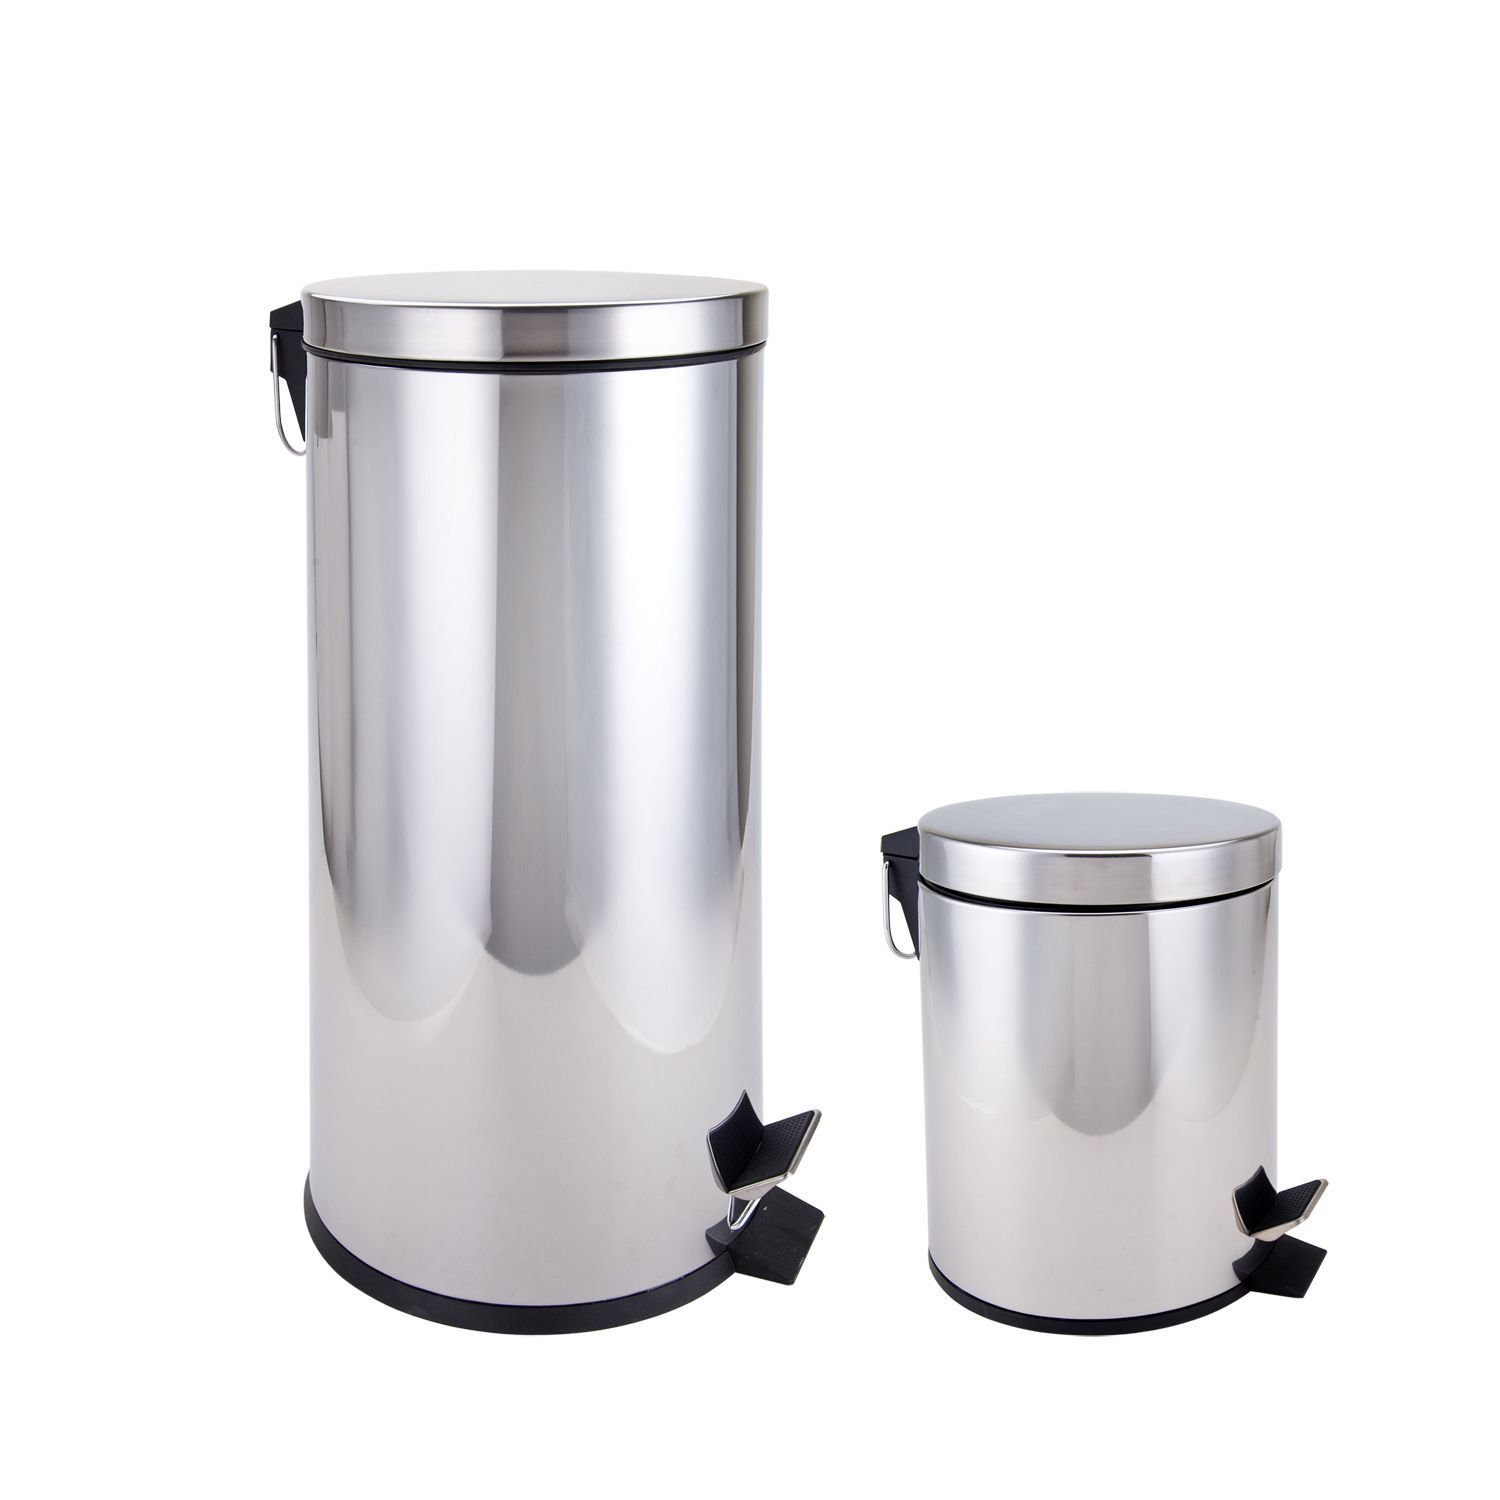 Stainless Steel Kitchen And Bathroom Trash Cans 2 Piece Set